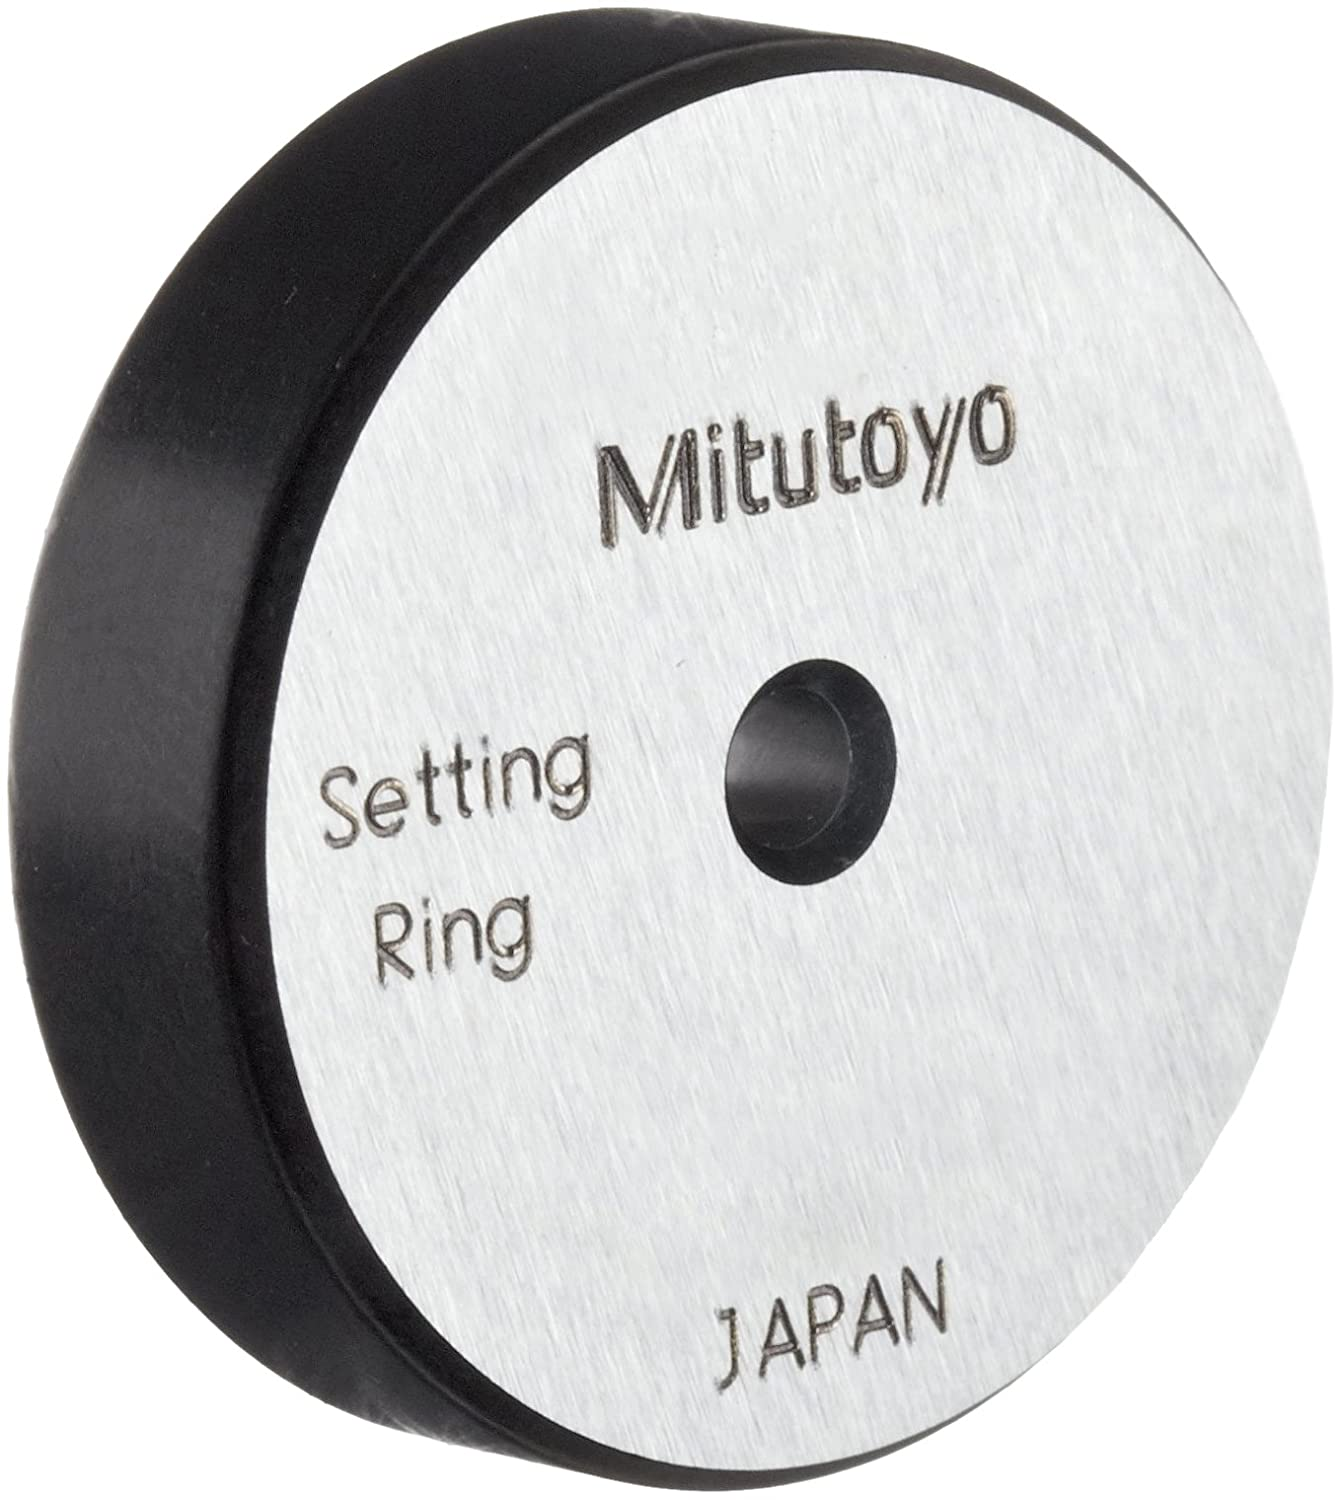 Mitutoyo 177-246 Setting Ring, 2.75mm Size, 7mm Width, 25mm Outside Diameter, -1.5Micrometer Accuracy